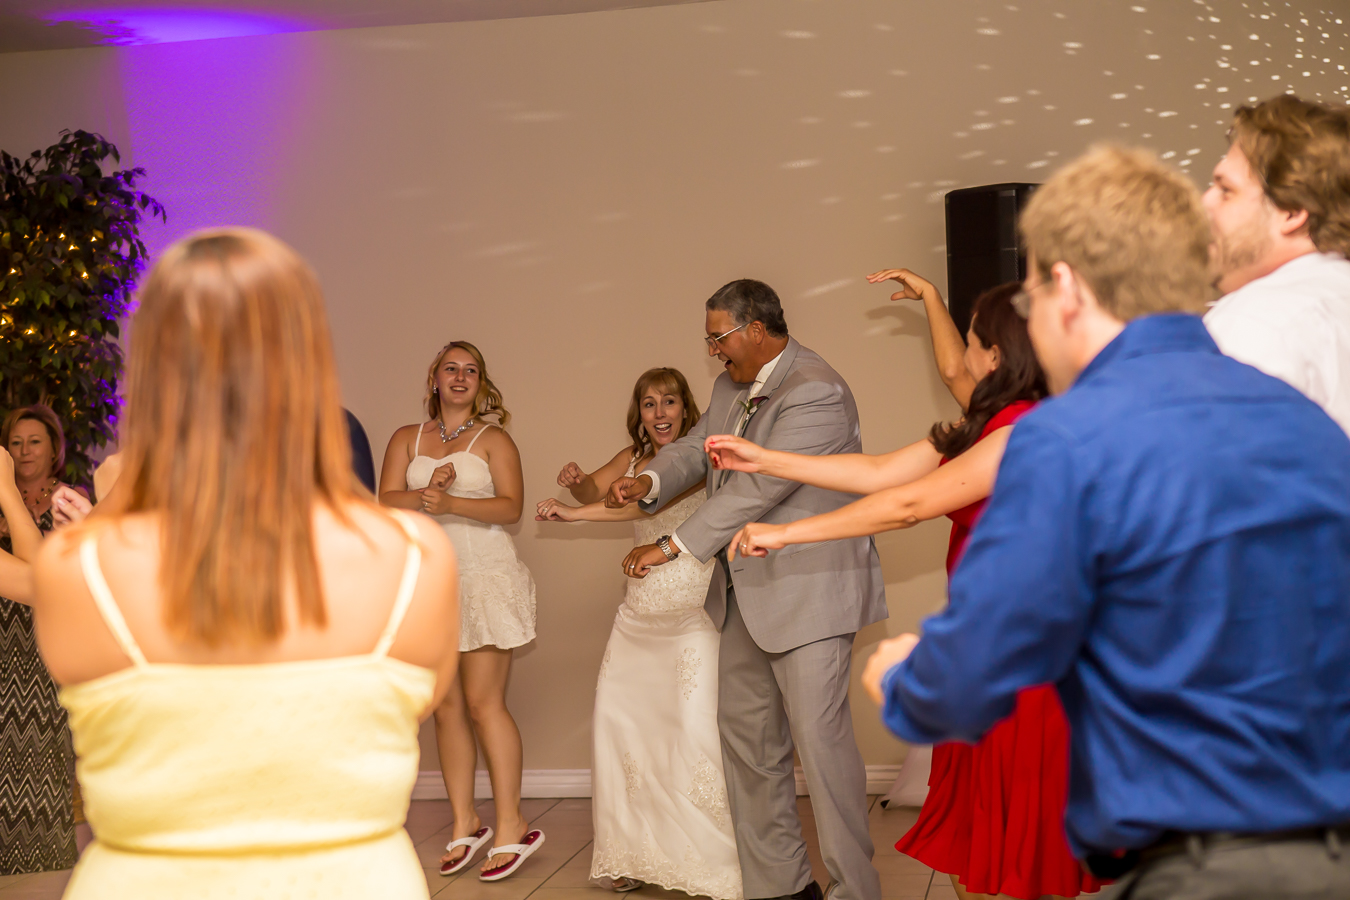 wedding-photographers-oklahoma-city-34.jpg